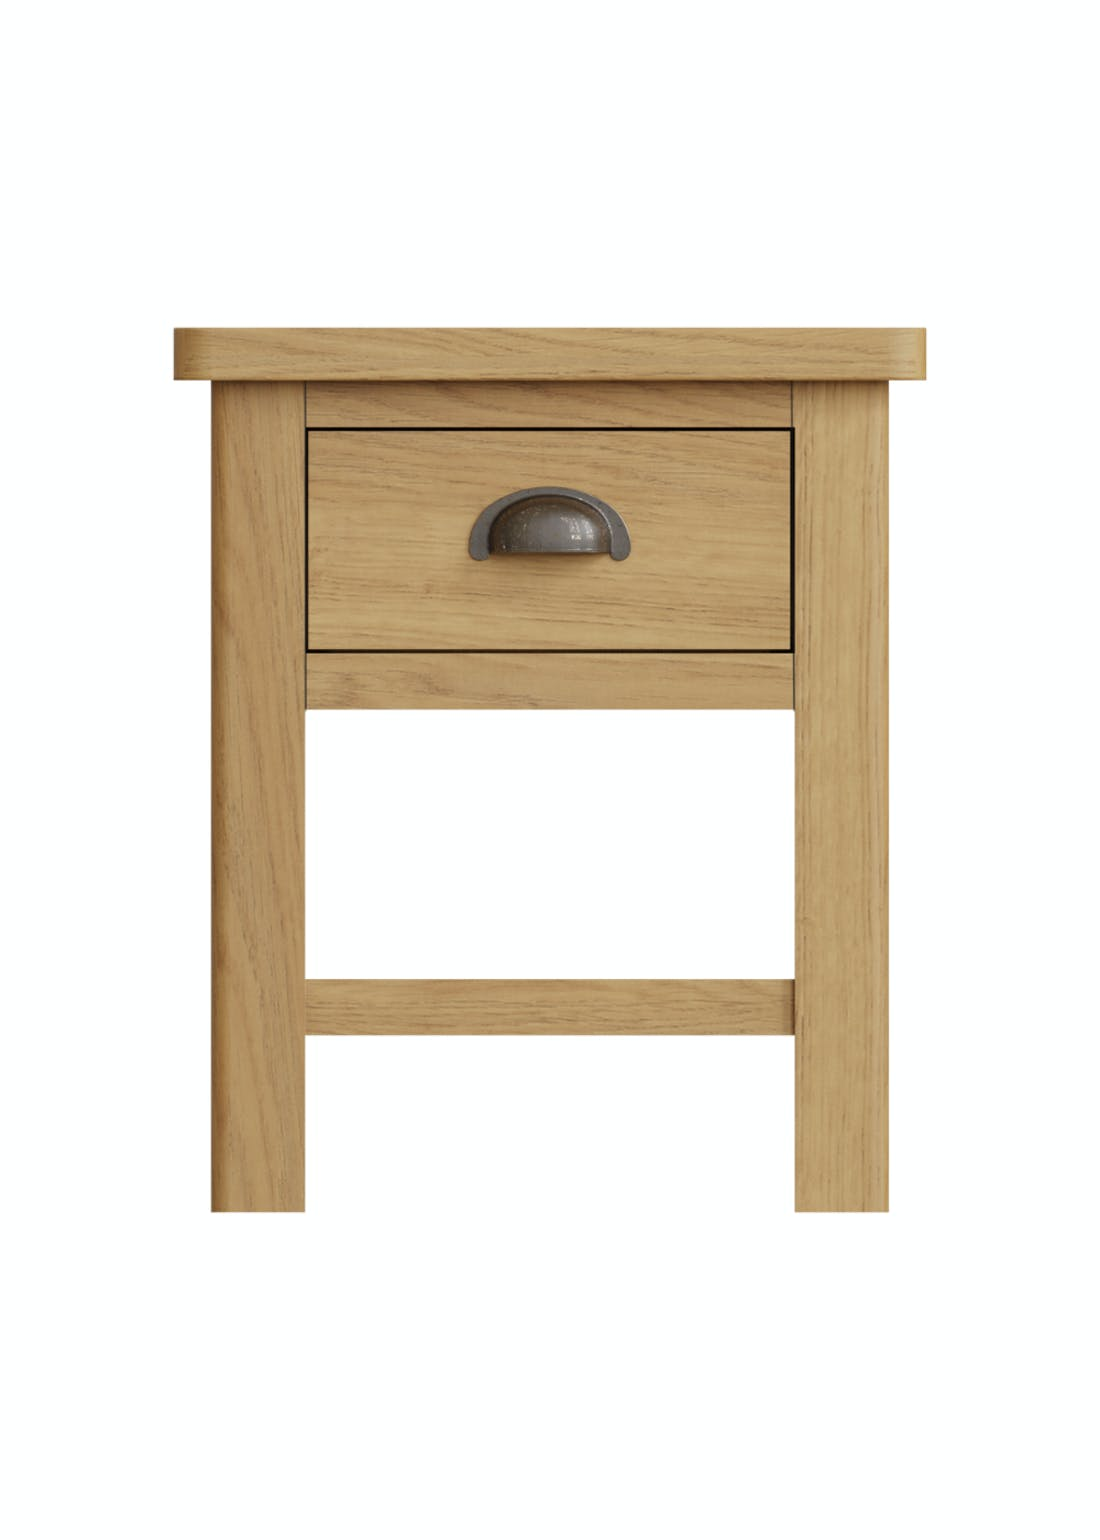 Interiors Direct Reanne Lamp Table (47cm x 40cm x 36cm)